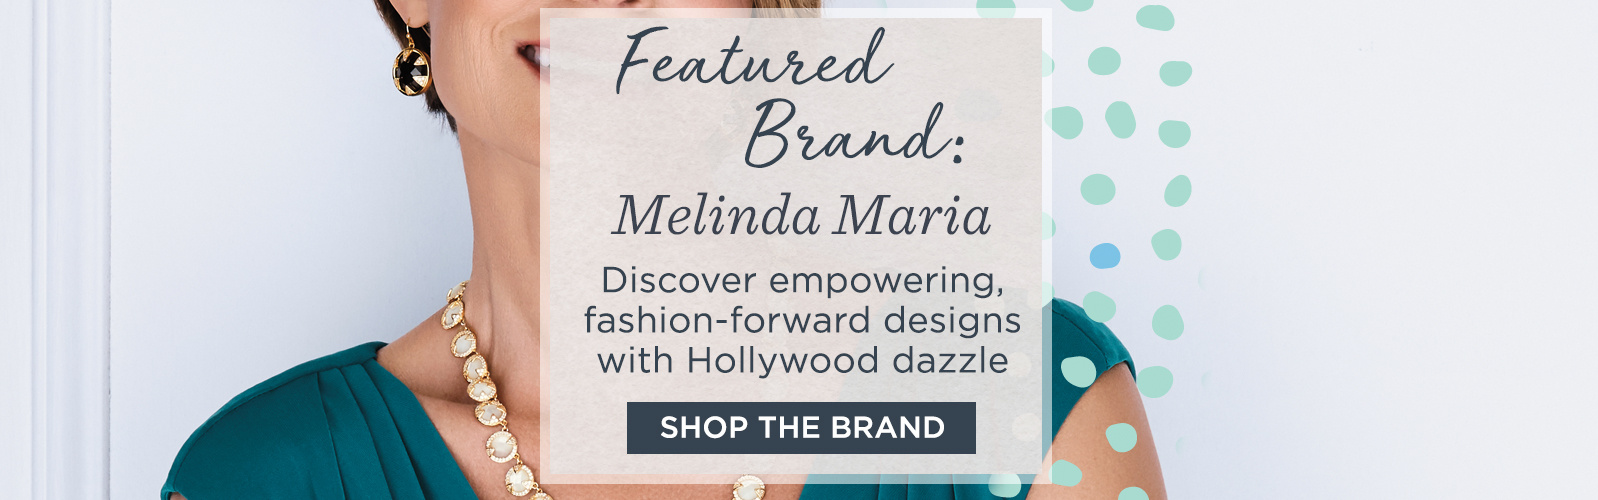 Featured Brand: Melinda Maria - Discover empowering, fashion-forward designs with Hollywood dazzle.